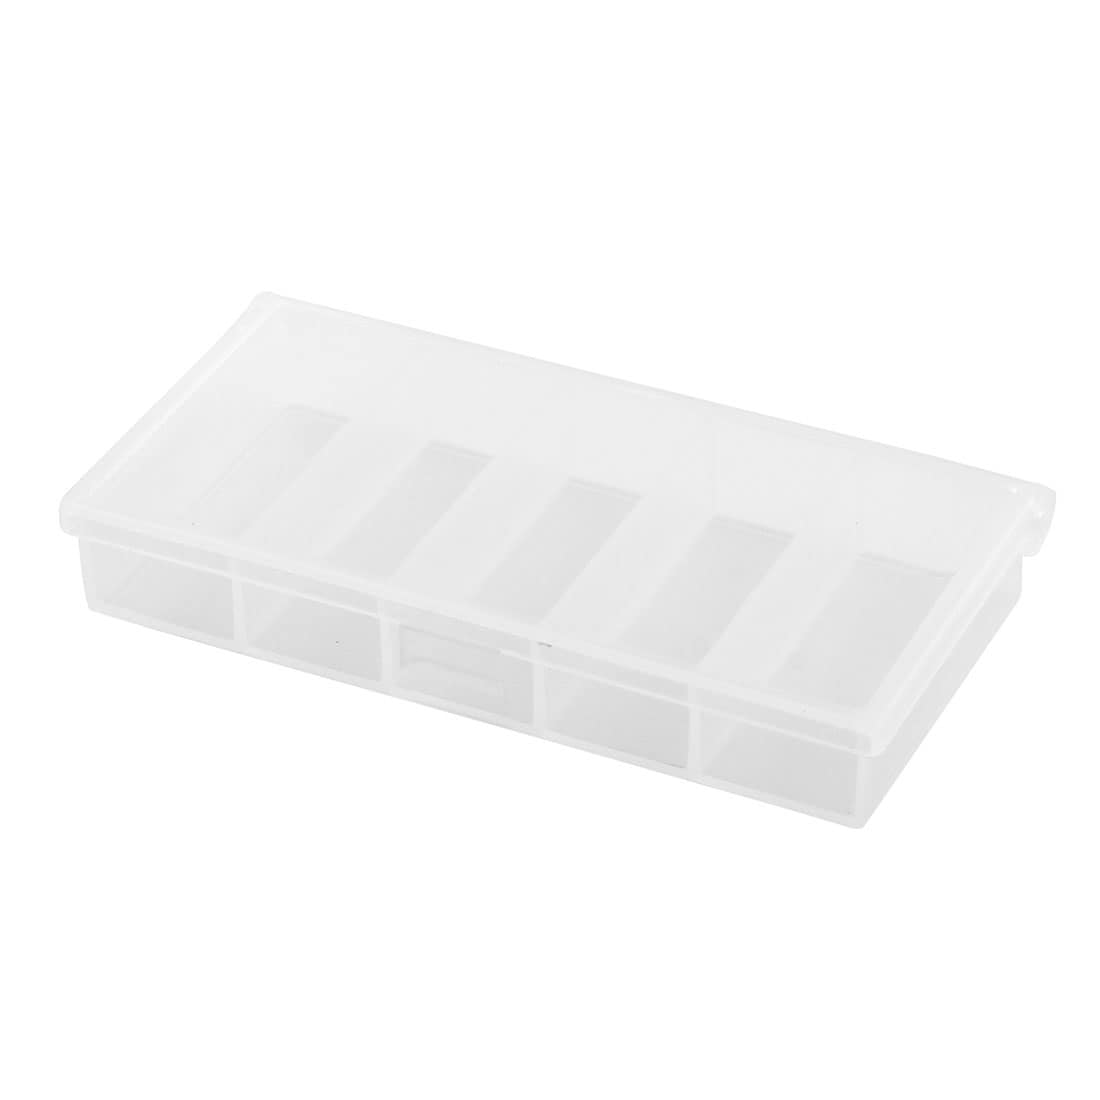 Angling Tackle Plastic 5 Compartments Fishing Lure Bait Storage Box Holder Clear